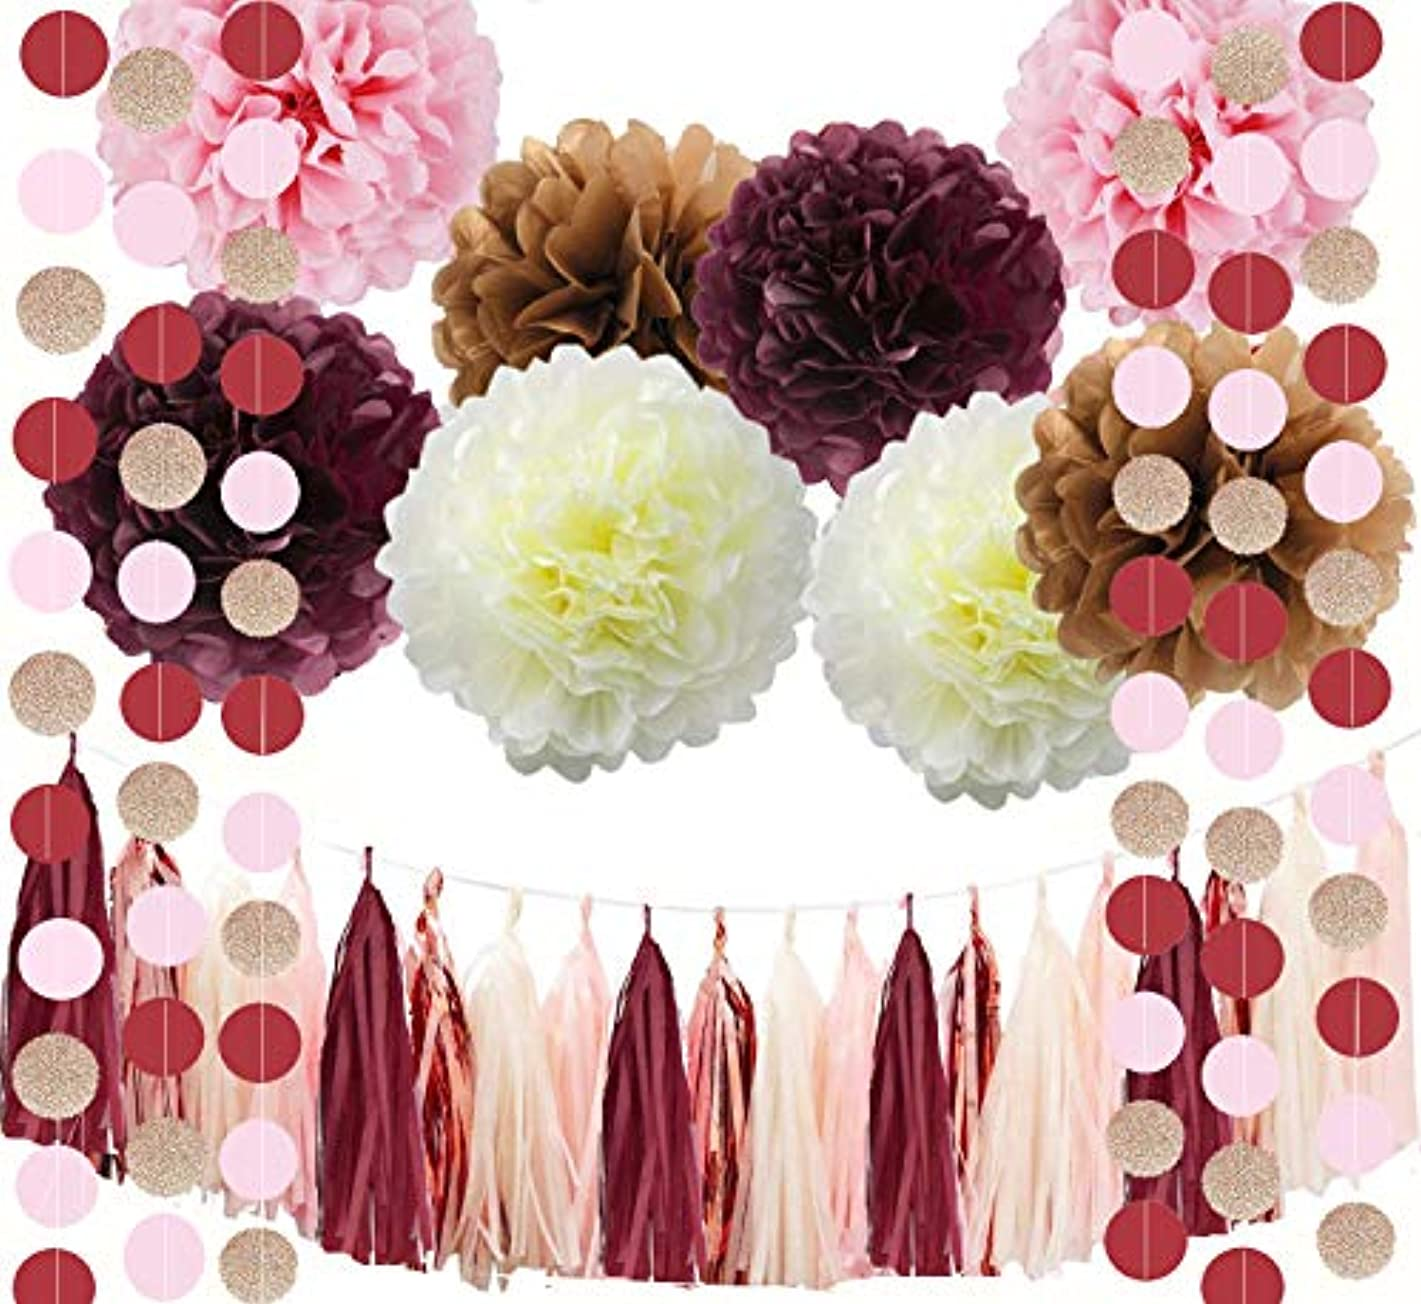 Fascola Bridal Shower Decorations Maroon Party Decorations Burgundy Glitter Rose Gold Blush Pink Ivory Birthday Decorations Tissue Paper Pom Pom Tassel Garland Burgundy Wedding/Bachelorette Party Dec